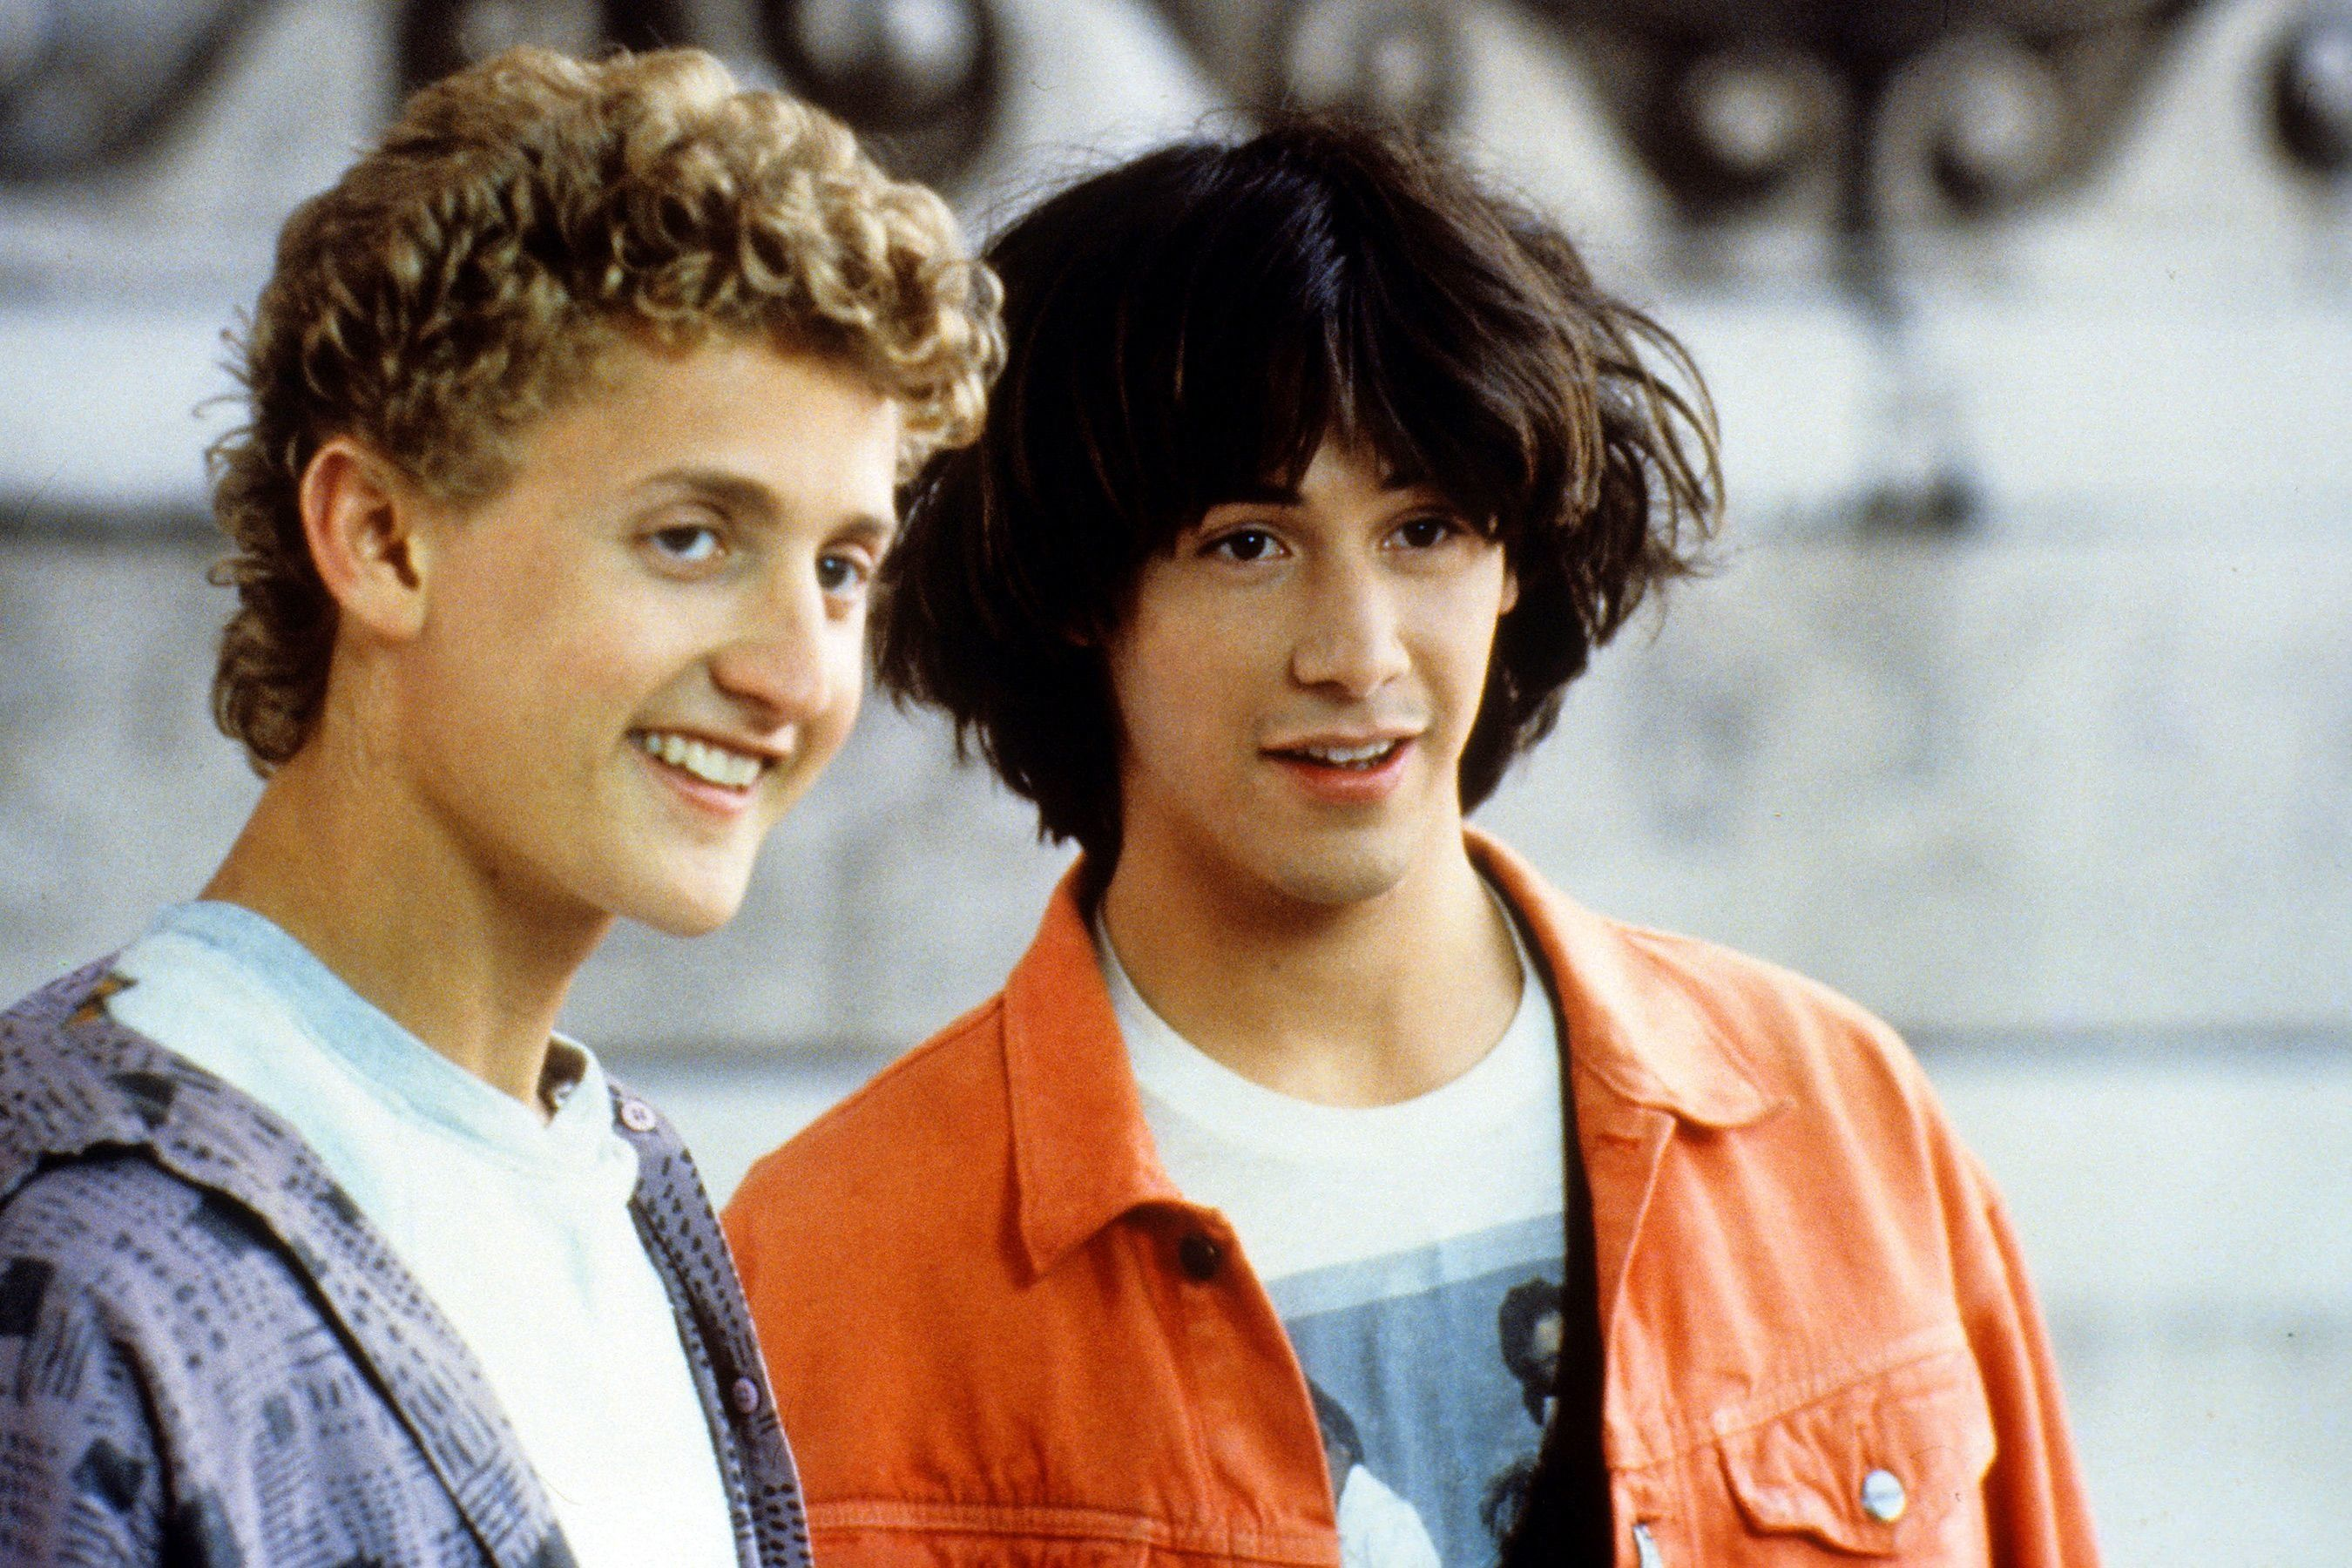 Keanu Reeves And Alex Winter Are Coming Back For 'Bill &Ted 3'